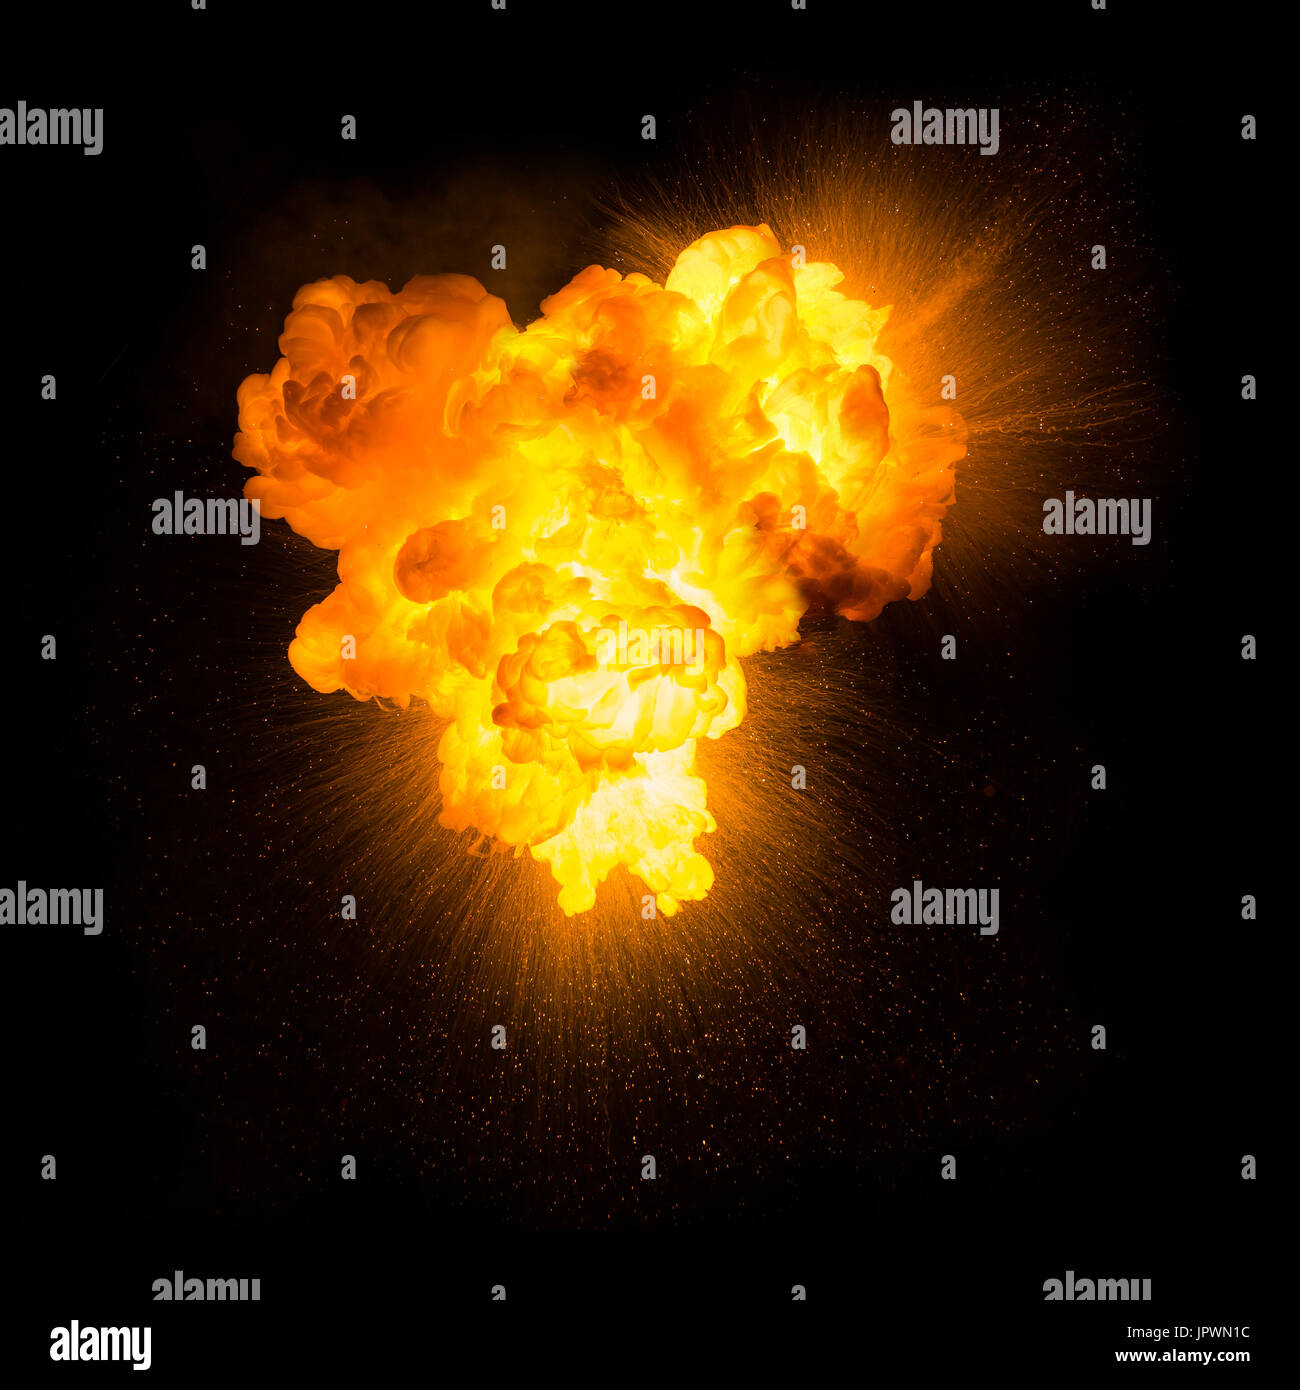 Realistic fiery explosion with sparks over a black background - Stock Image